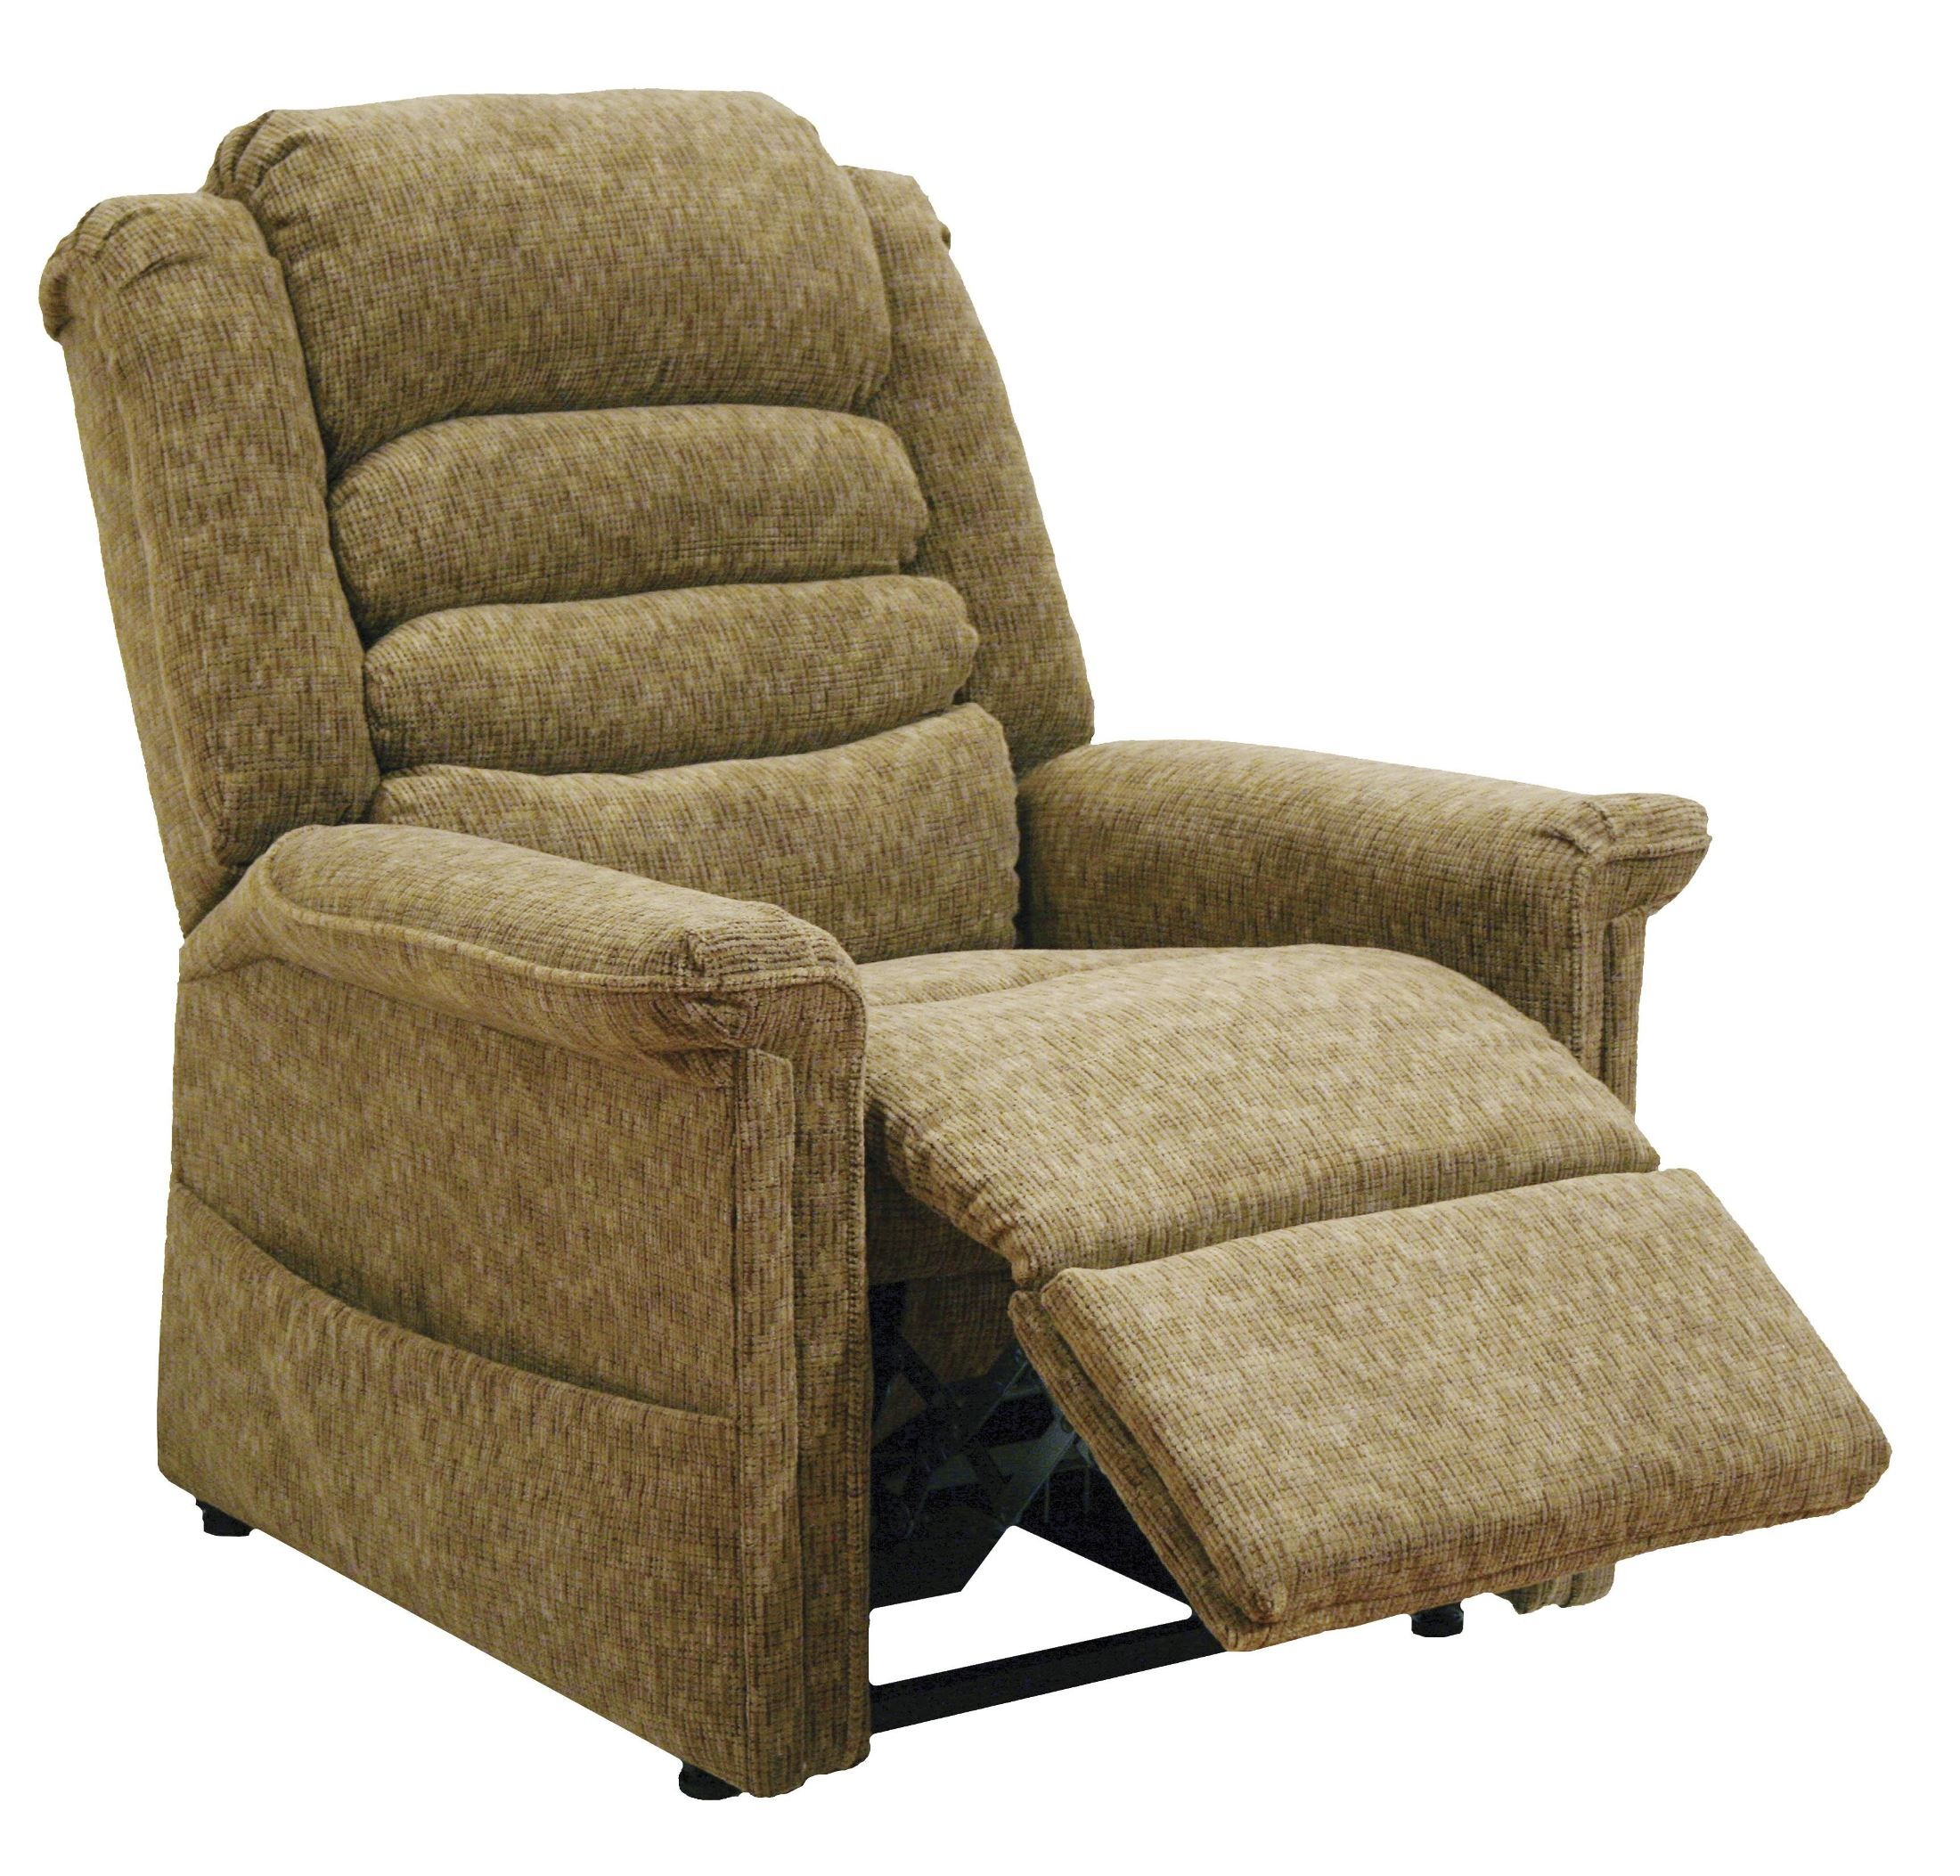 Soother autumn power lift recliner from catnapper for Catnapper cloud nine chaise recliner